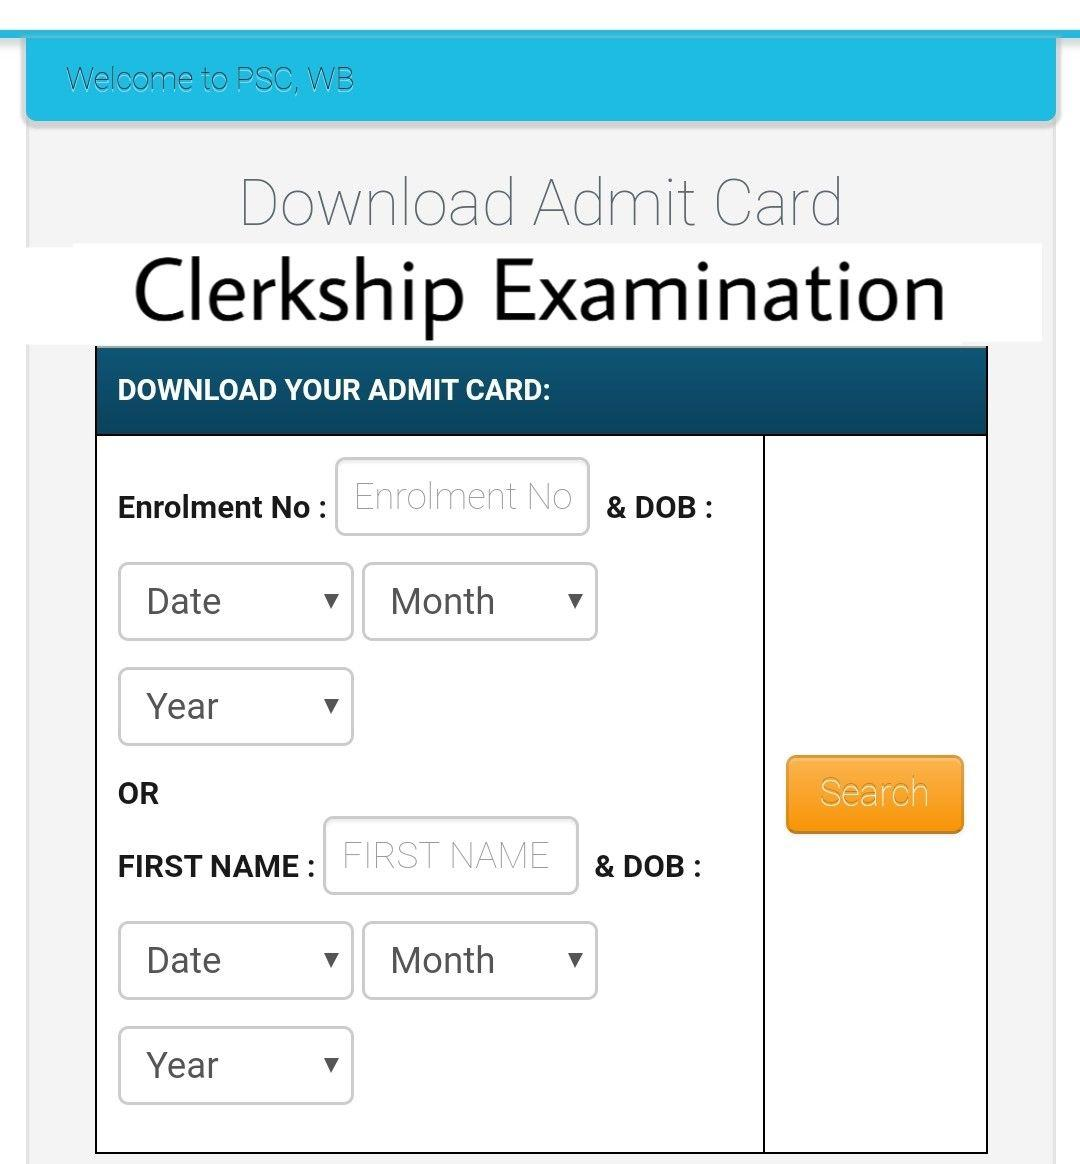 WBPSC Clerk Admit Card 2020 - West Bengal Public Service Commission Clerkship Exam Date, Call Letter Hall Ticket, Result Download